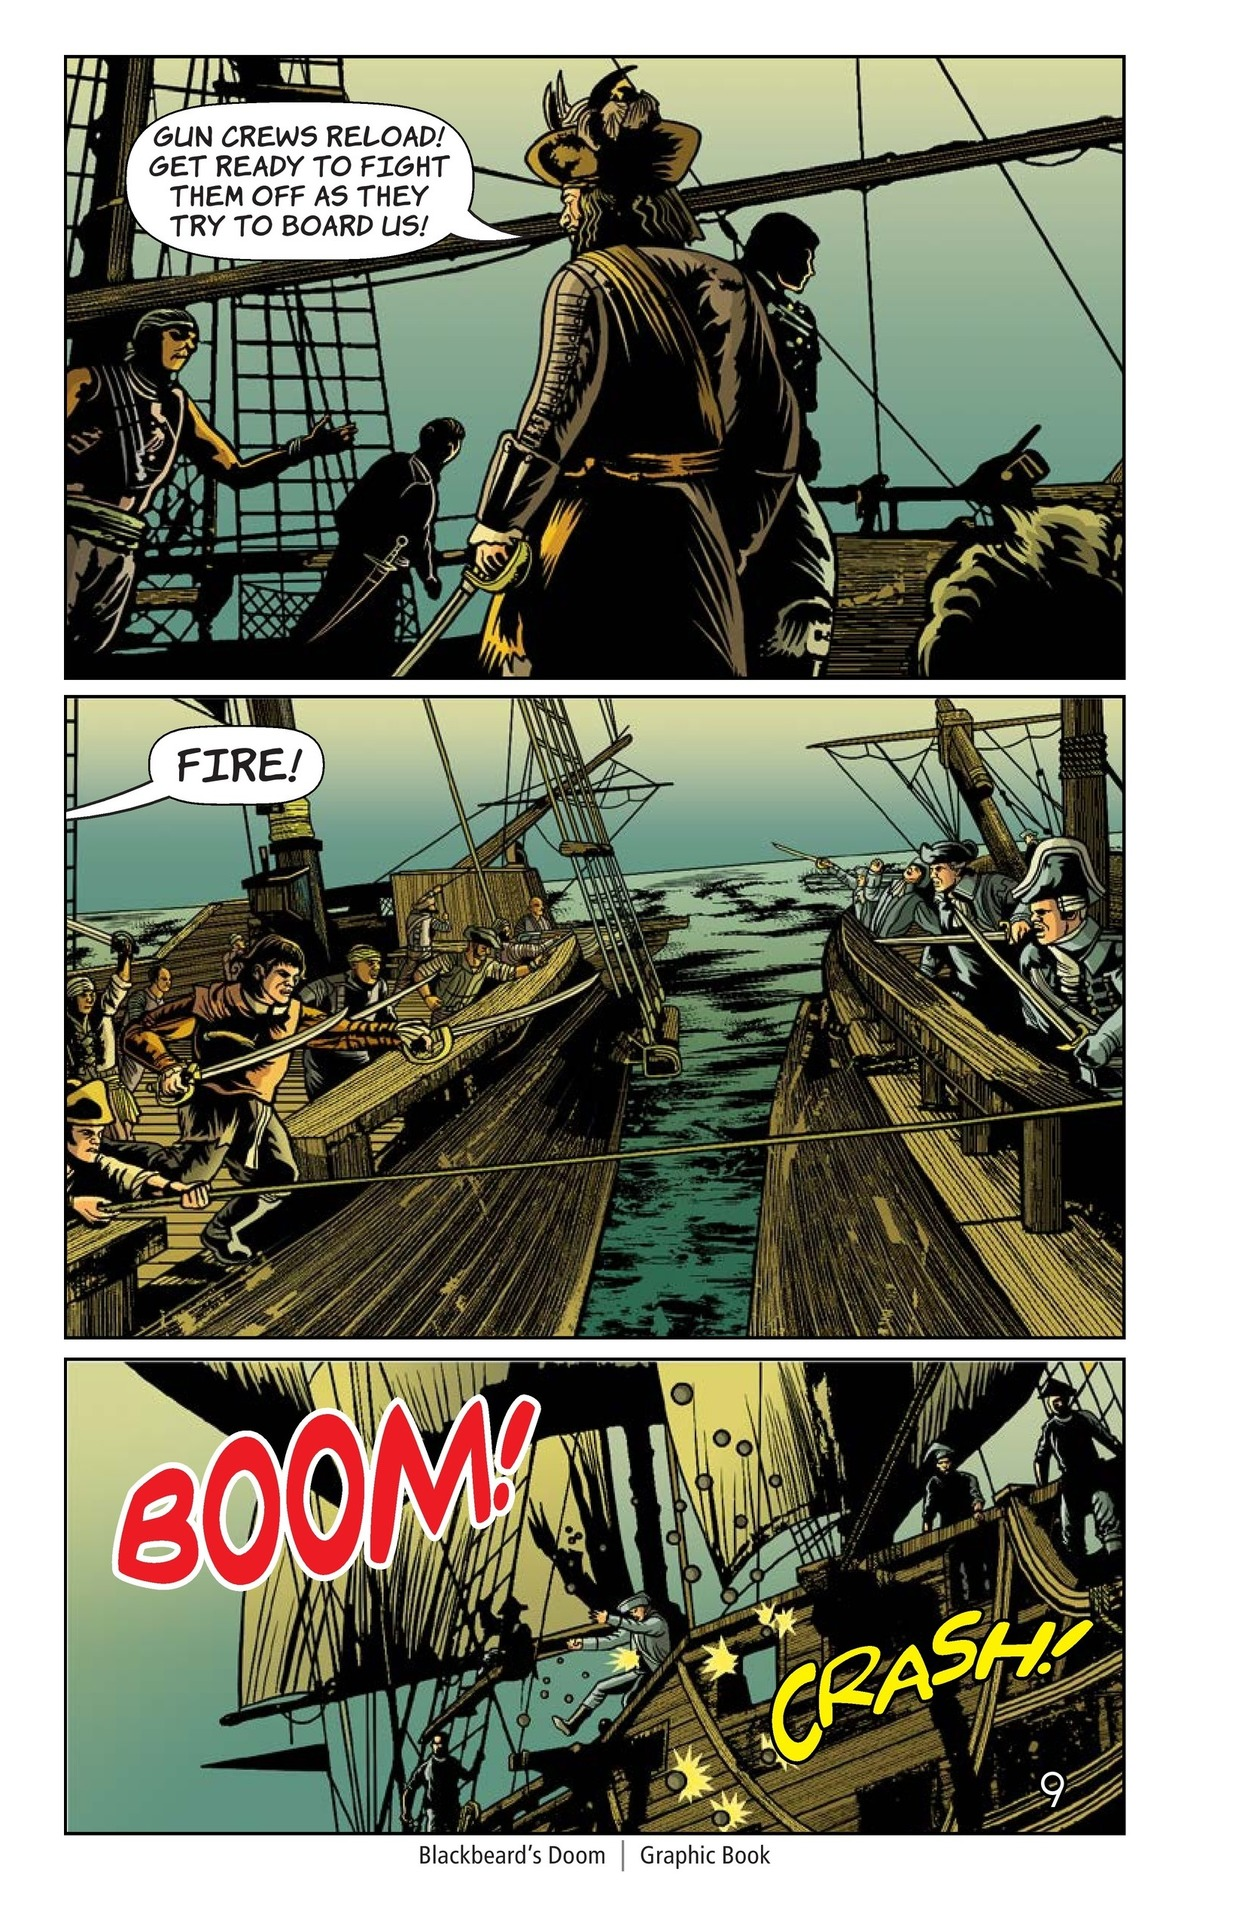 Book Preview For Blackbeard's Doom Page 10